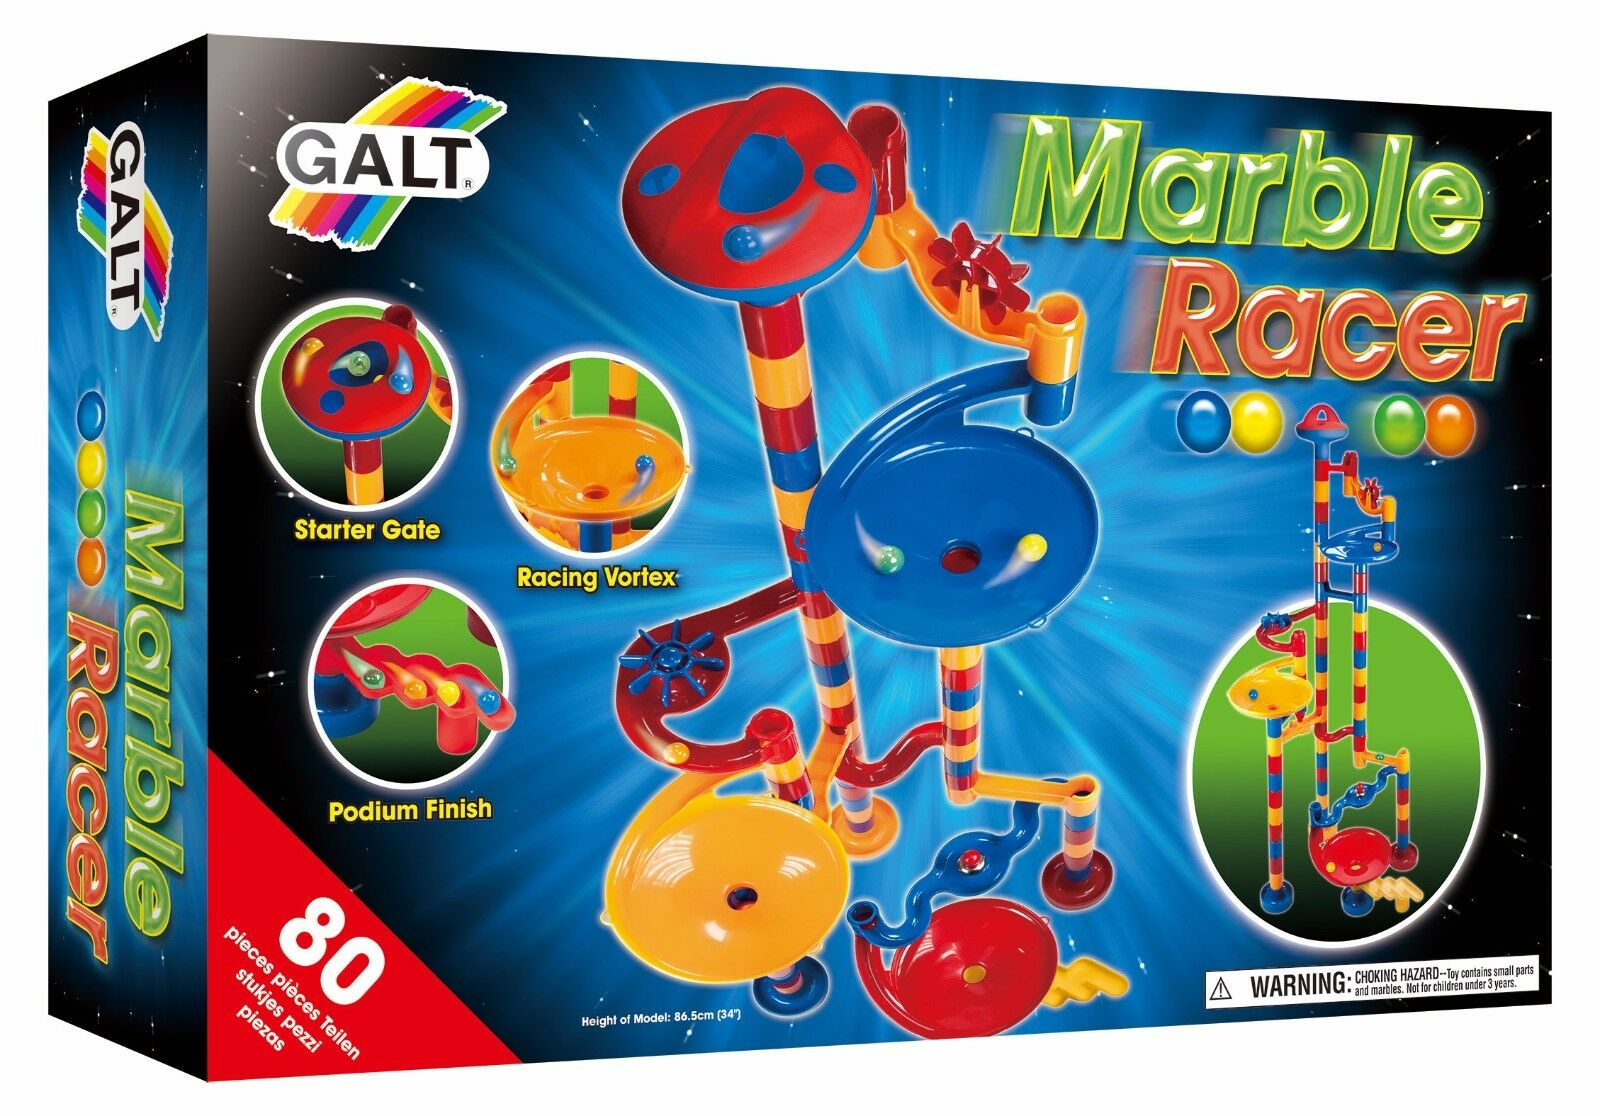 Galt Marble Racer Construction Toy For Kids - FAST & FREE DELIVERY